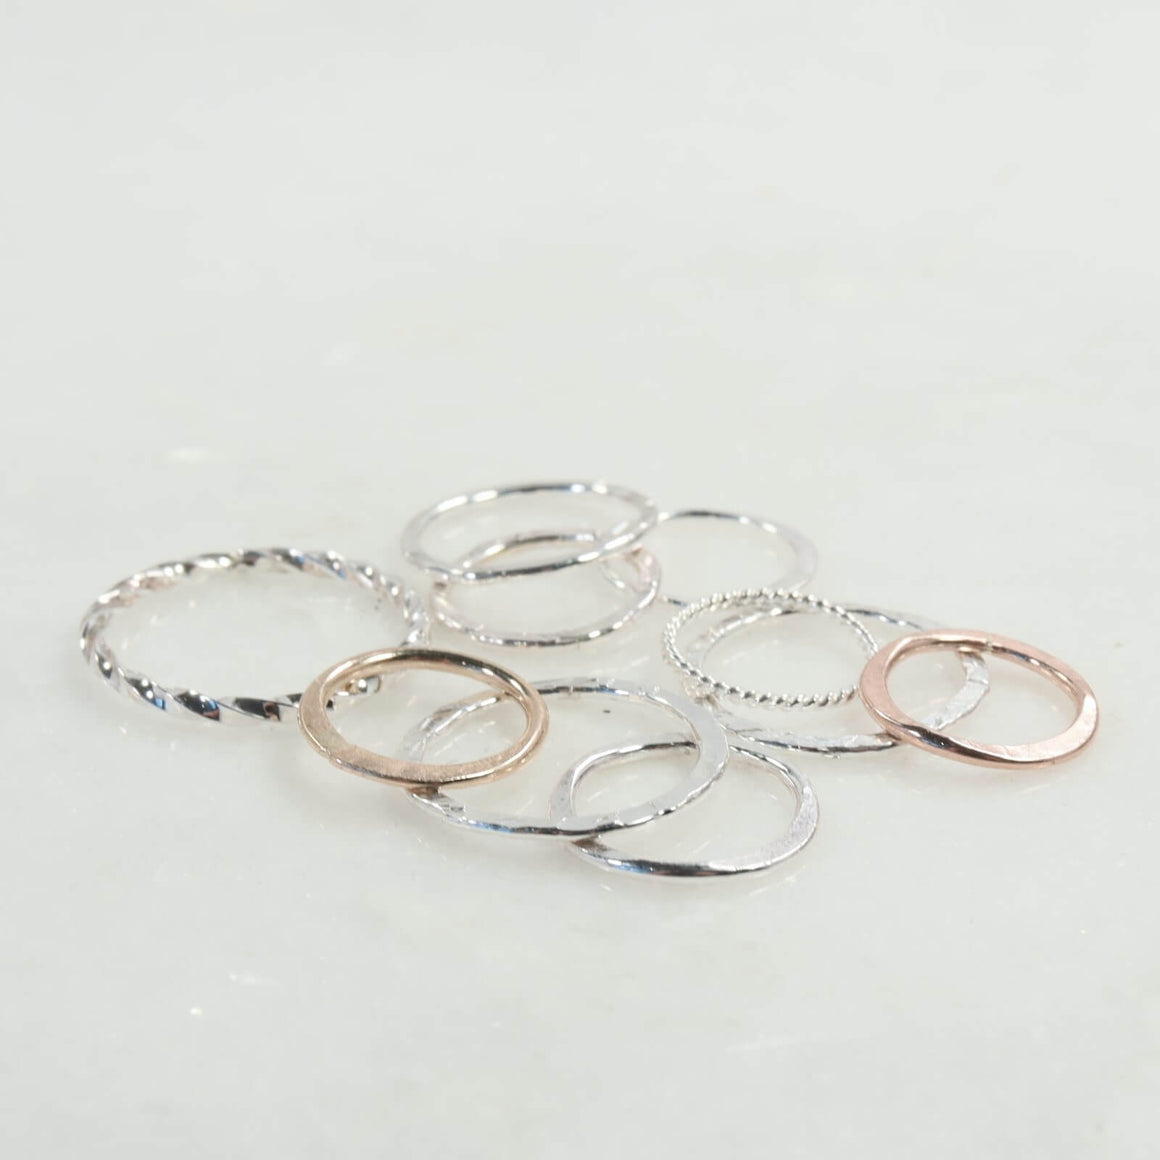 20mm 1.5mm circles silver, gold, pink gold